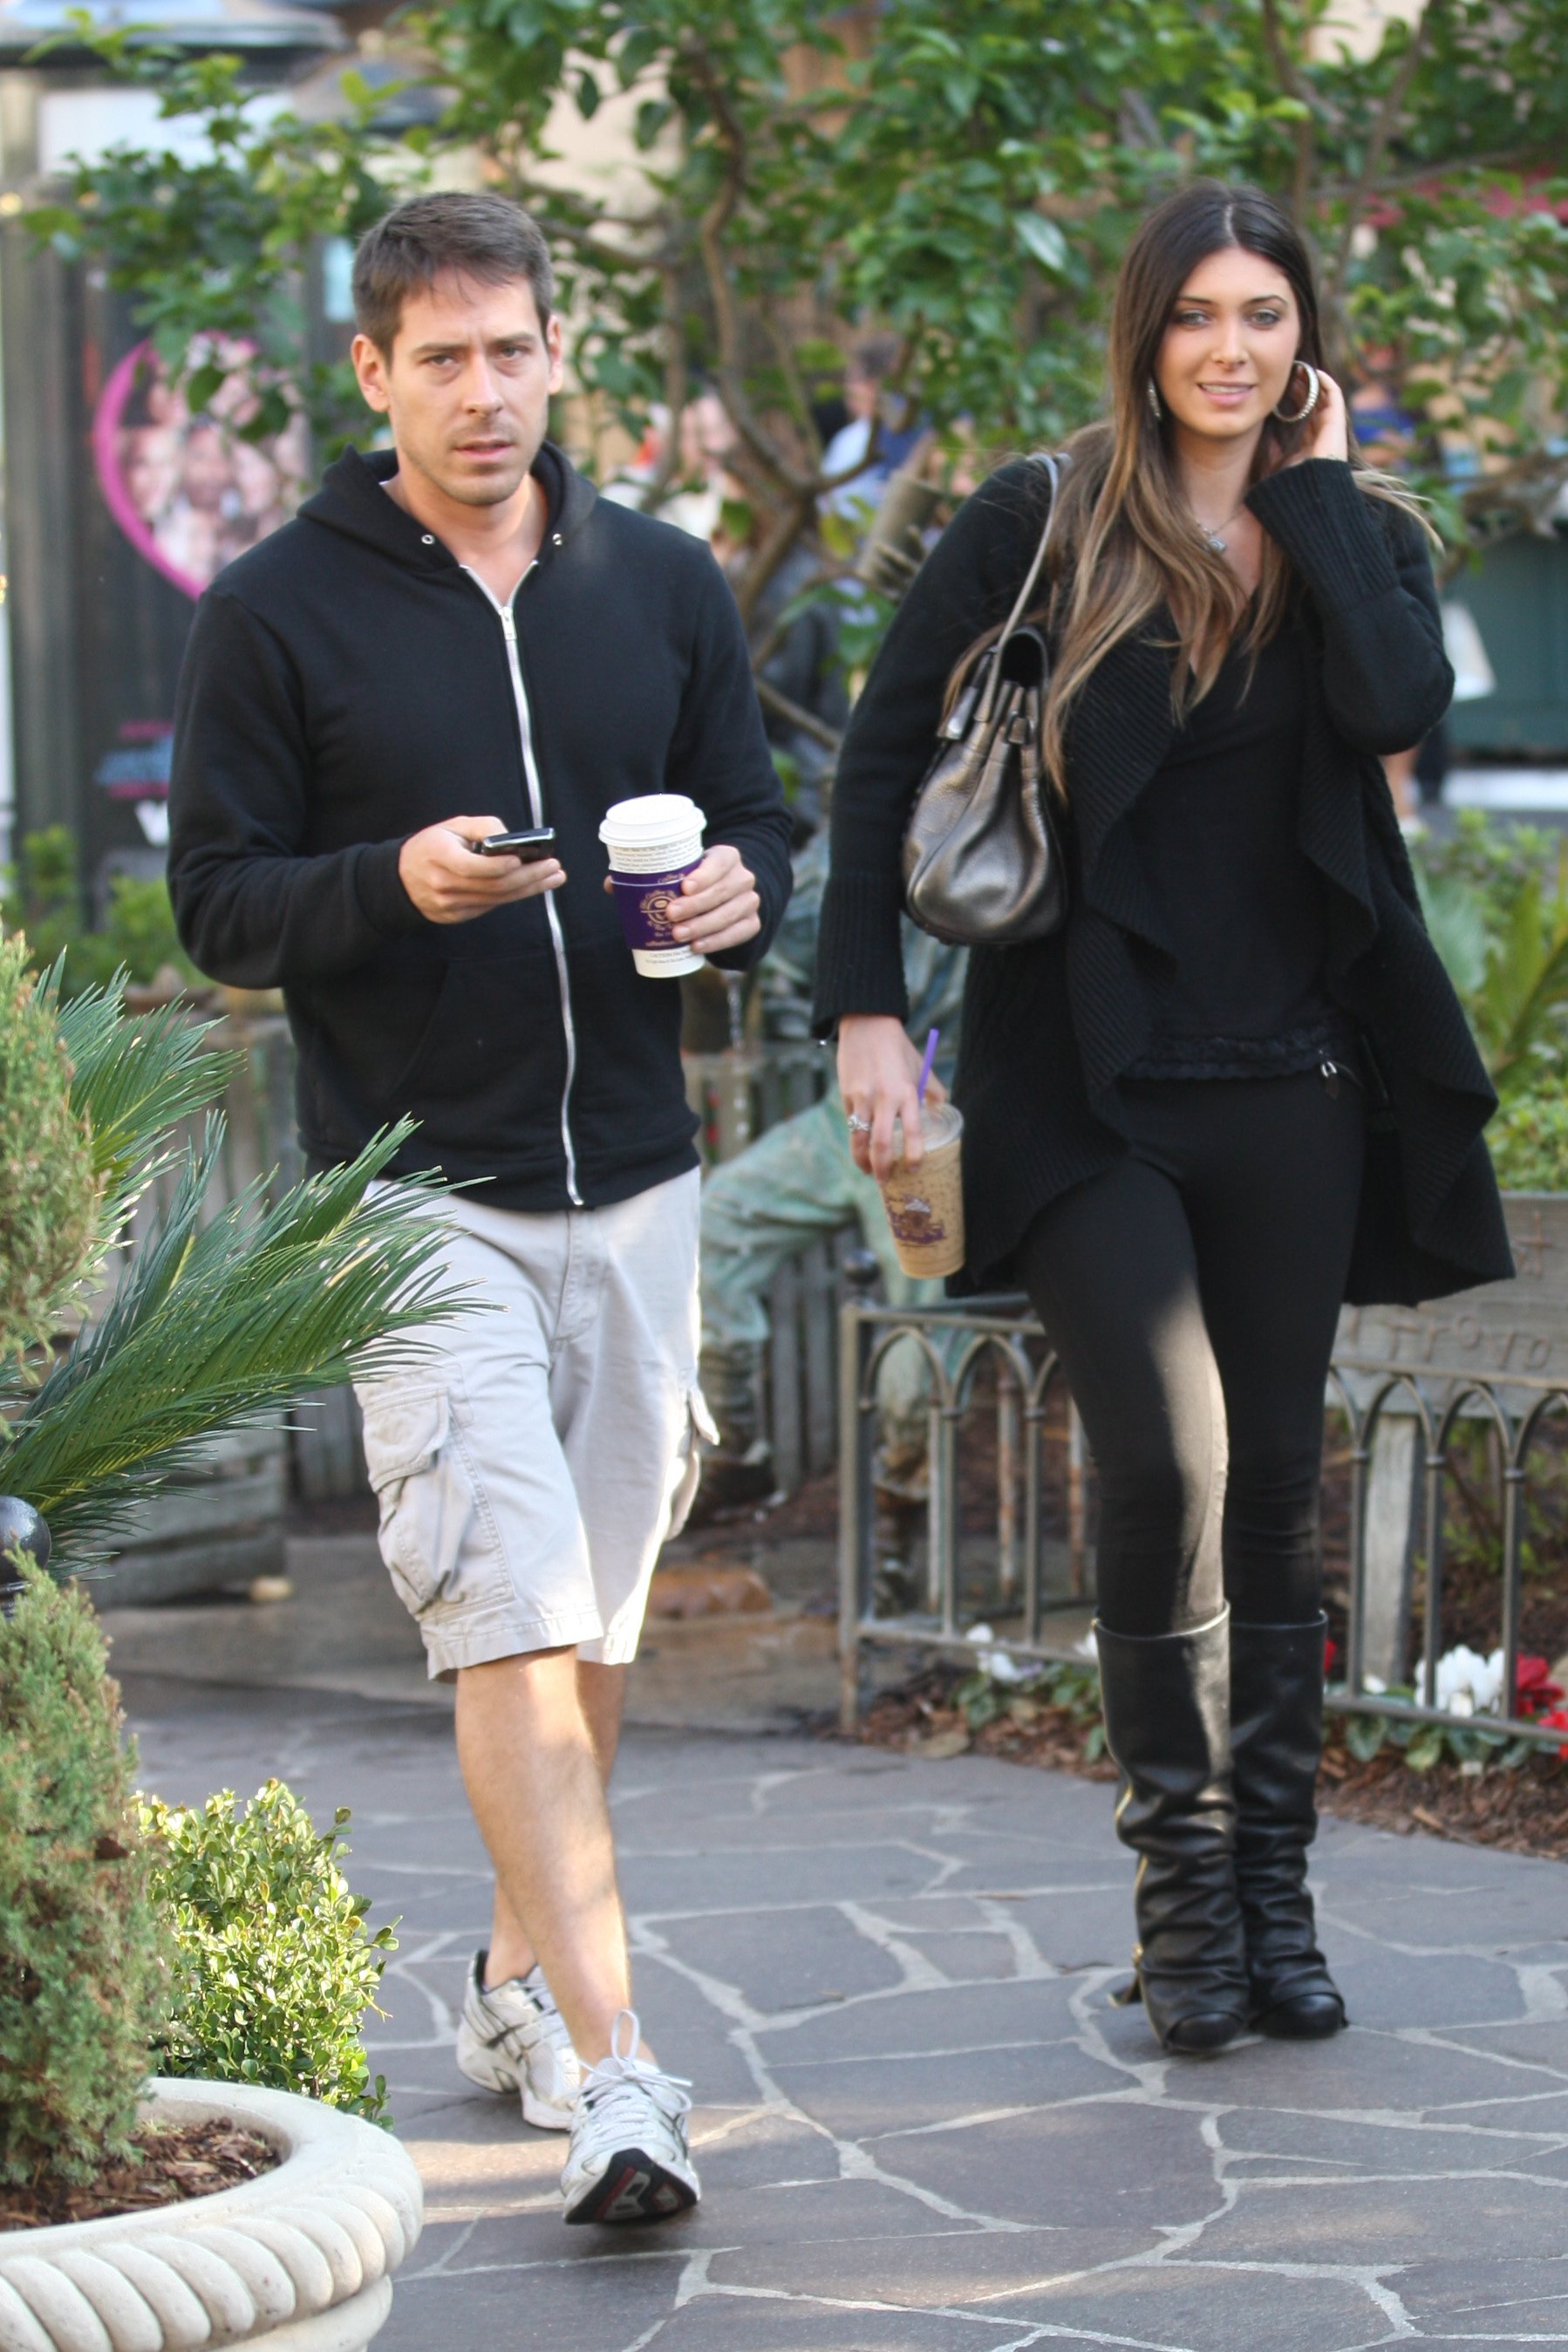 24889_celebrity-paradise.com-The_Elder-Brittny_Gastineau_2010-01-31_-_out_shopping_in_Hollywood_122_489lo.jpg